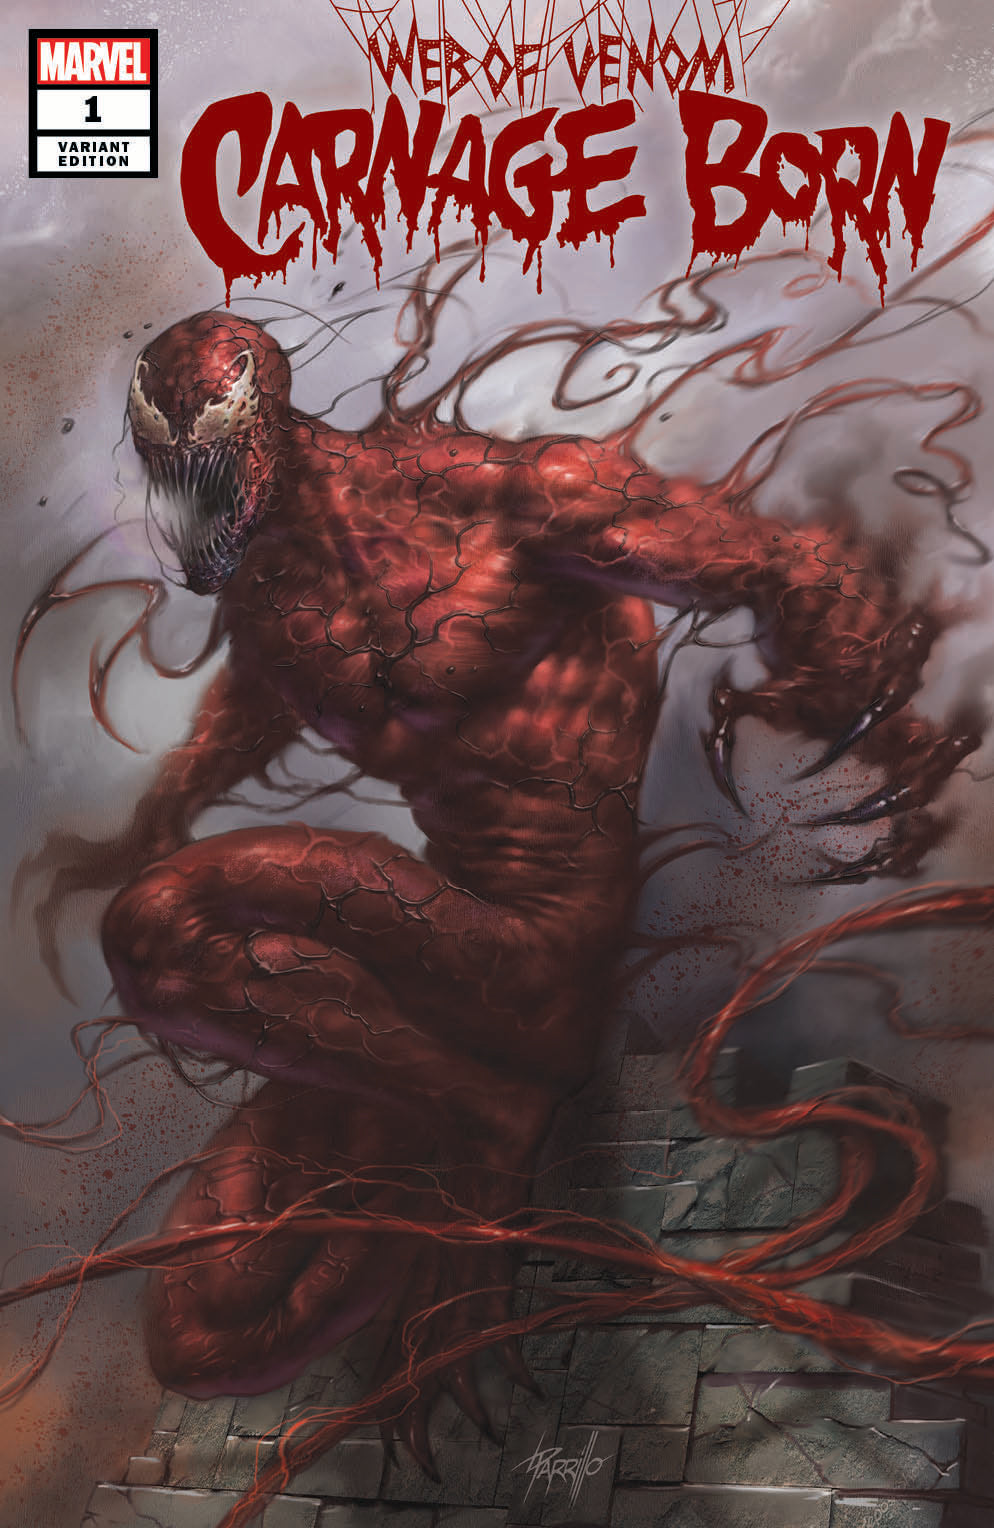 Web of Venom: Carnage Born #1 Parrillo Exclusive Variant